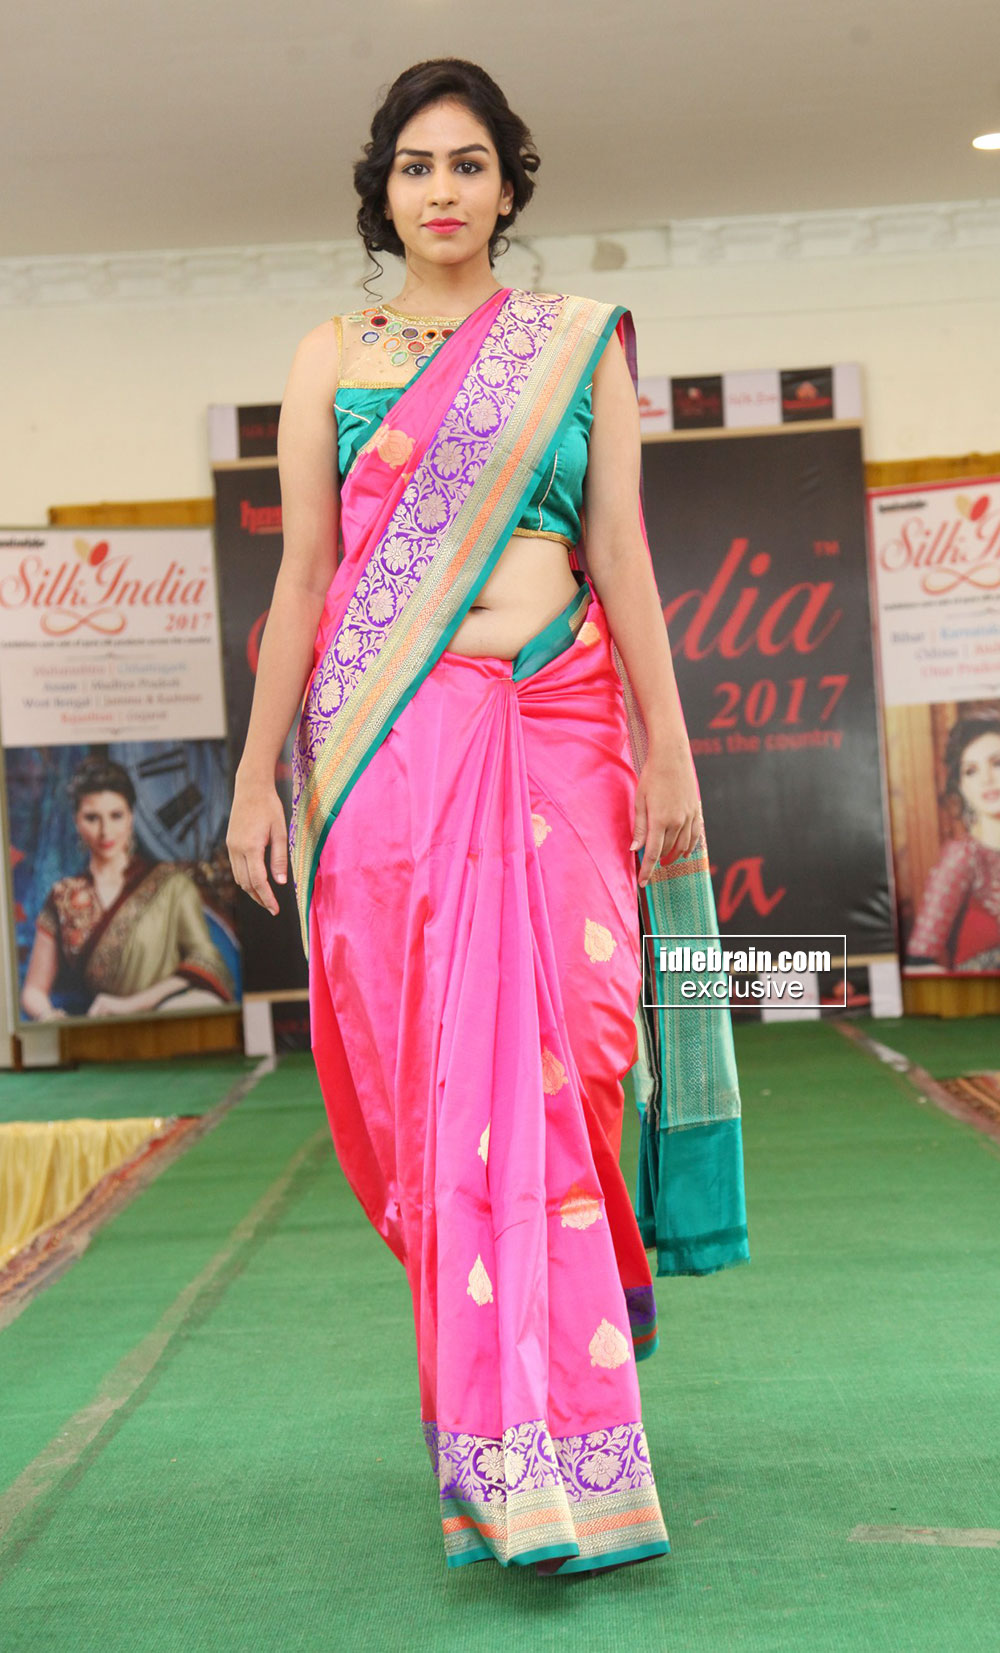 Silk India Expo Fashion Show At Sri Raja Rajeshwari Gardens Secunderabad Telugu Cinema